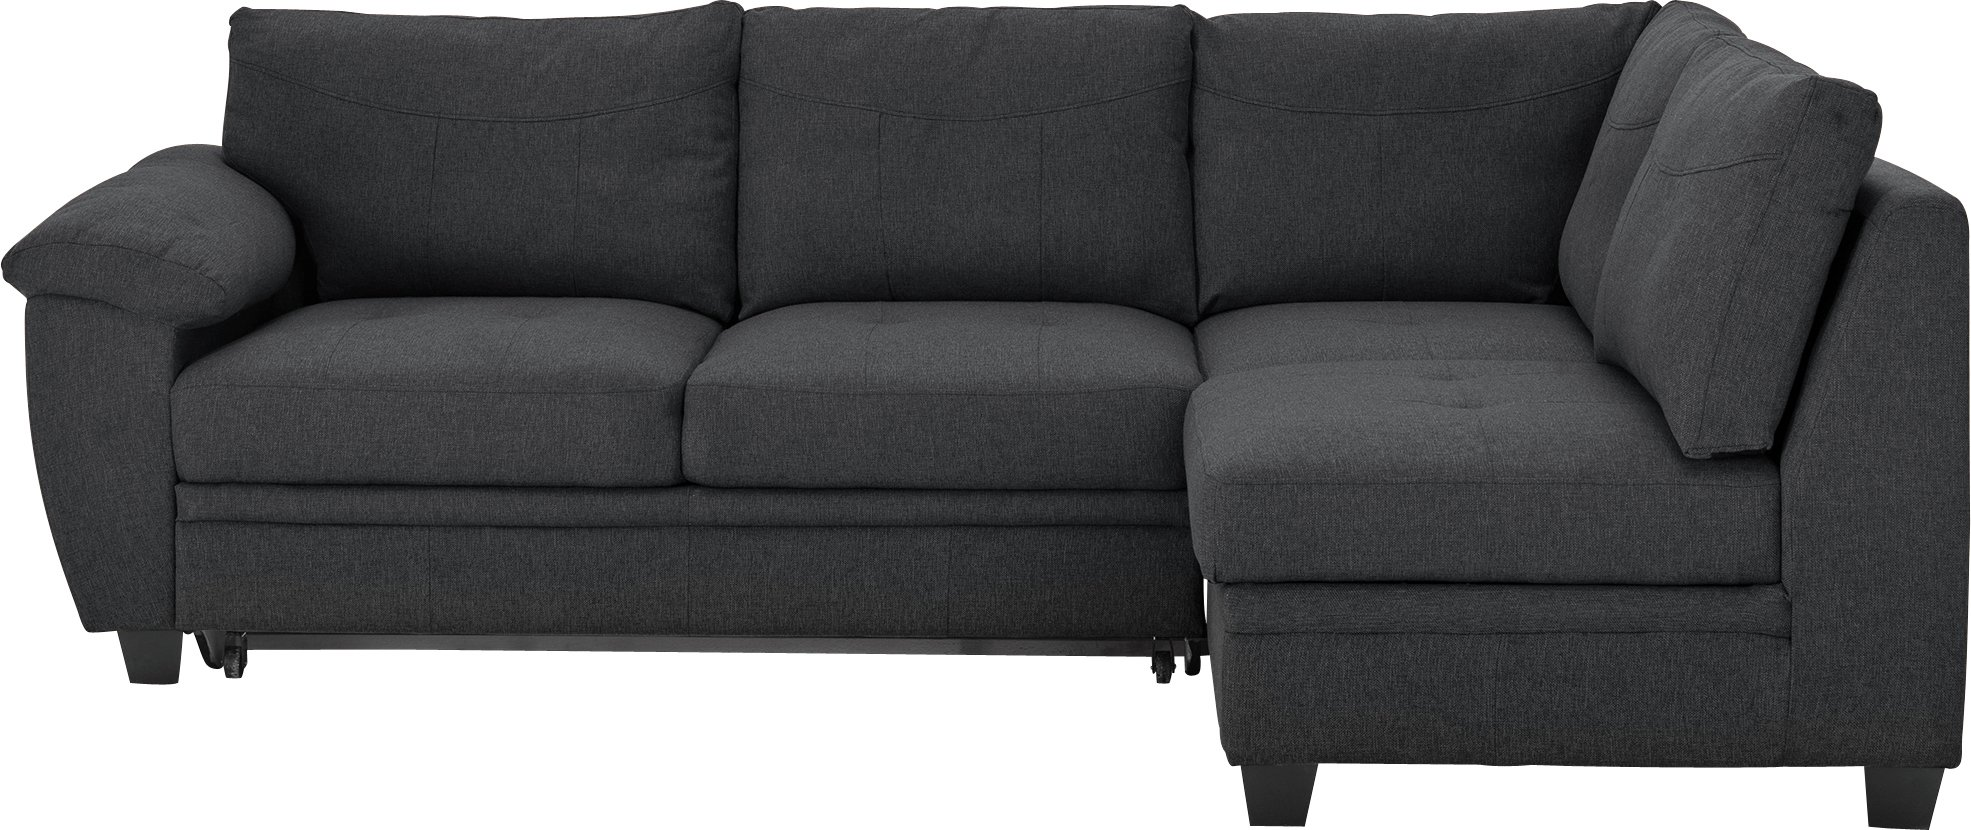 Buy Collection Fernando Fabric Right Corner Sofa Bed Charcoal at